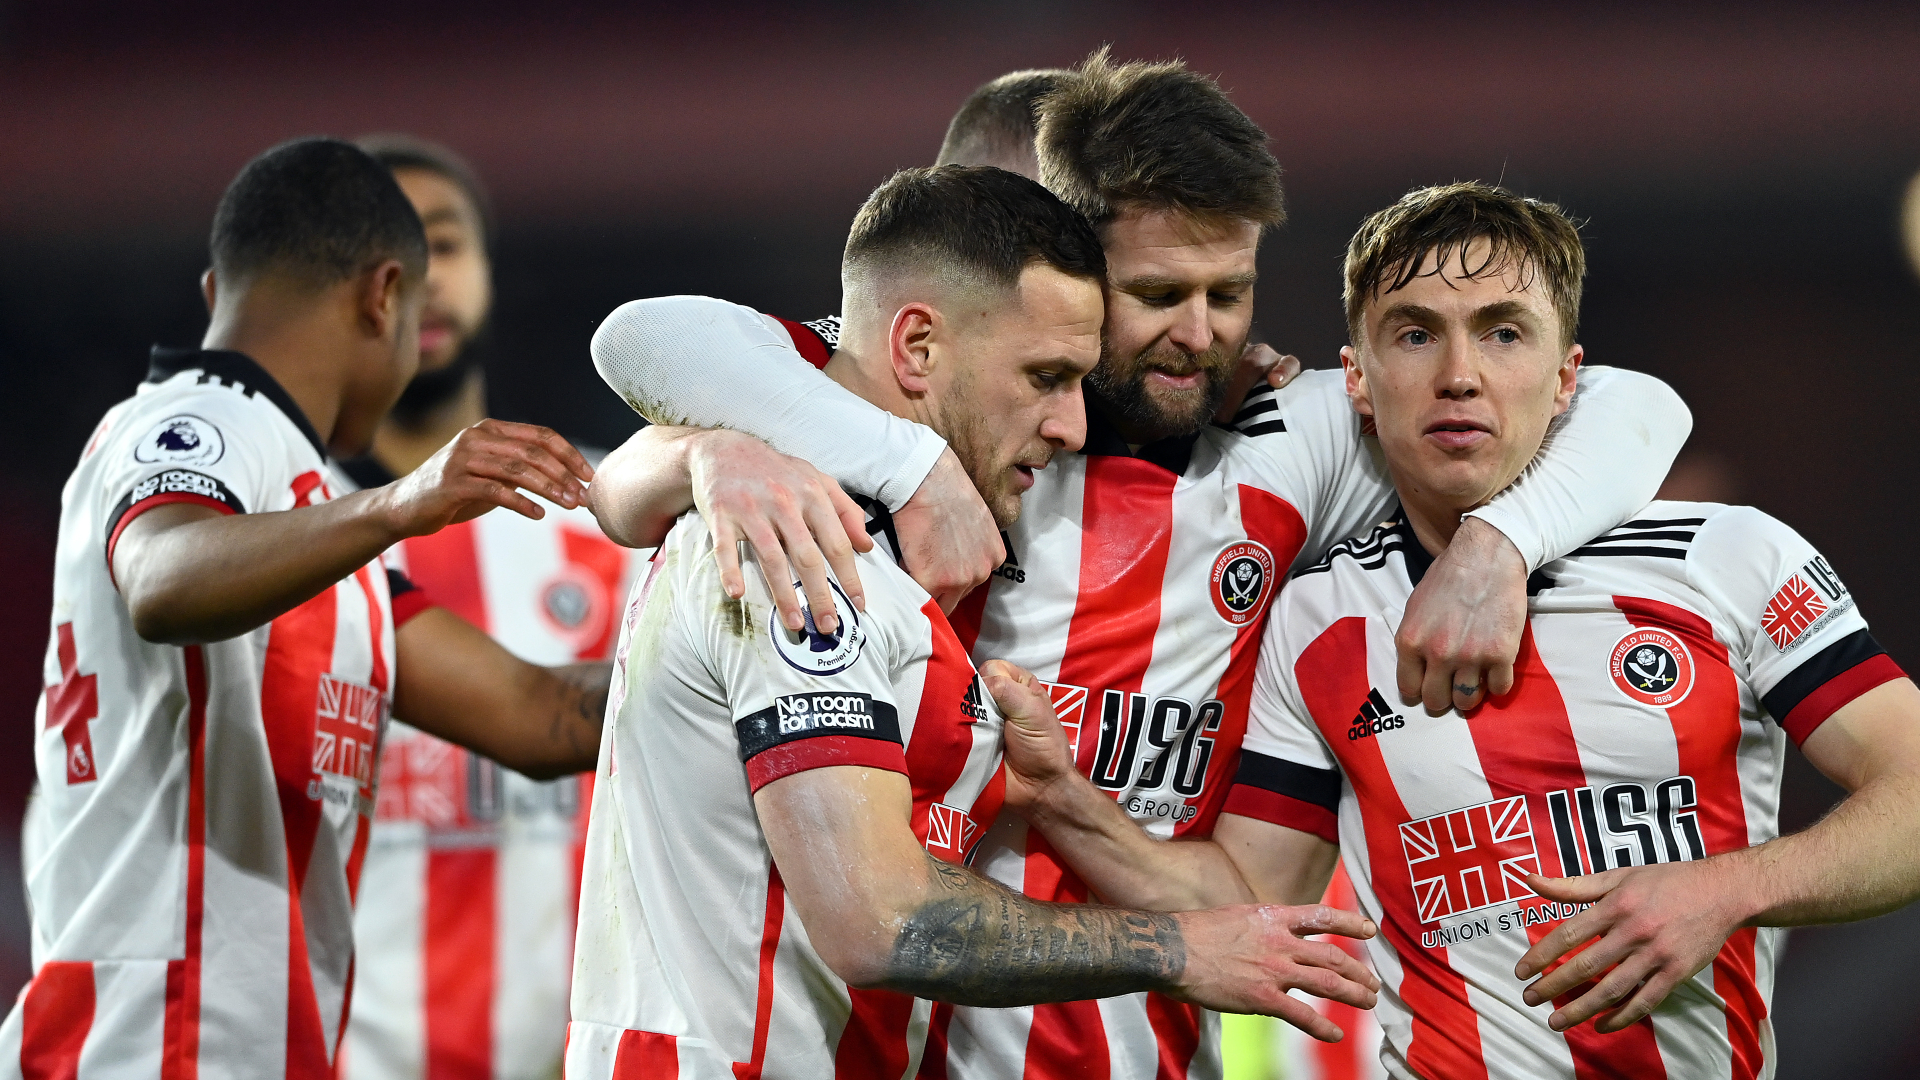 Sheffield United end Premier League's longest winless start with victory over Newcastle